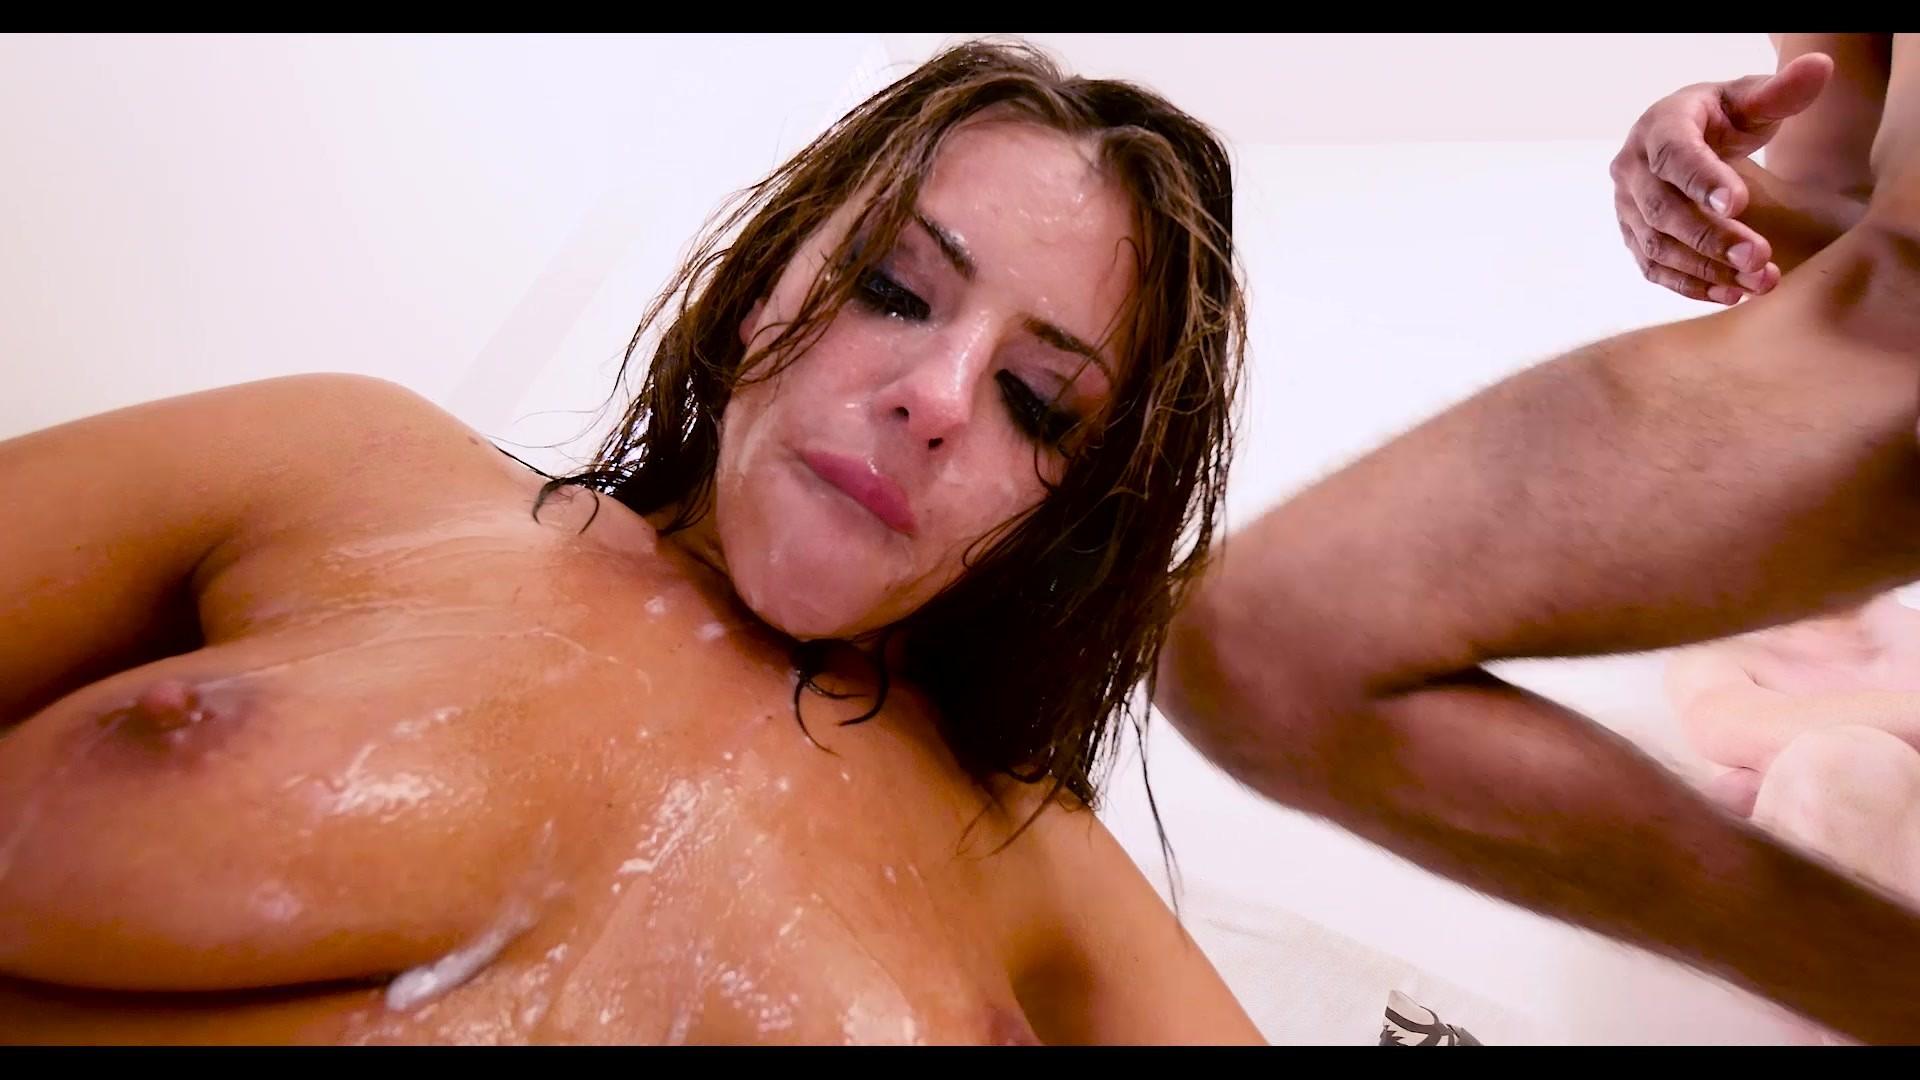 Scene with Adriana Chechik - image 19 out of 20